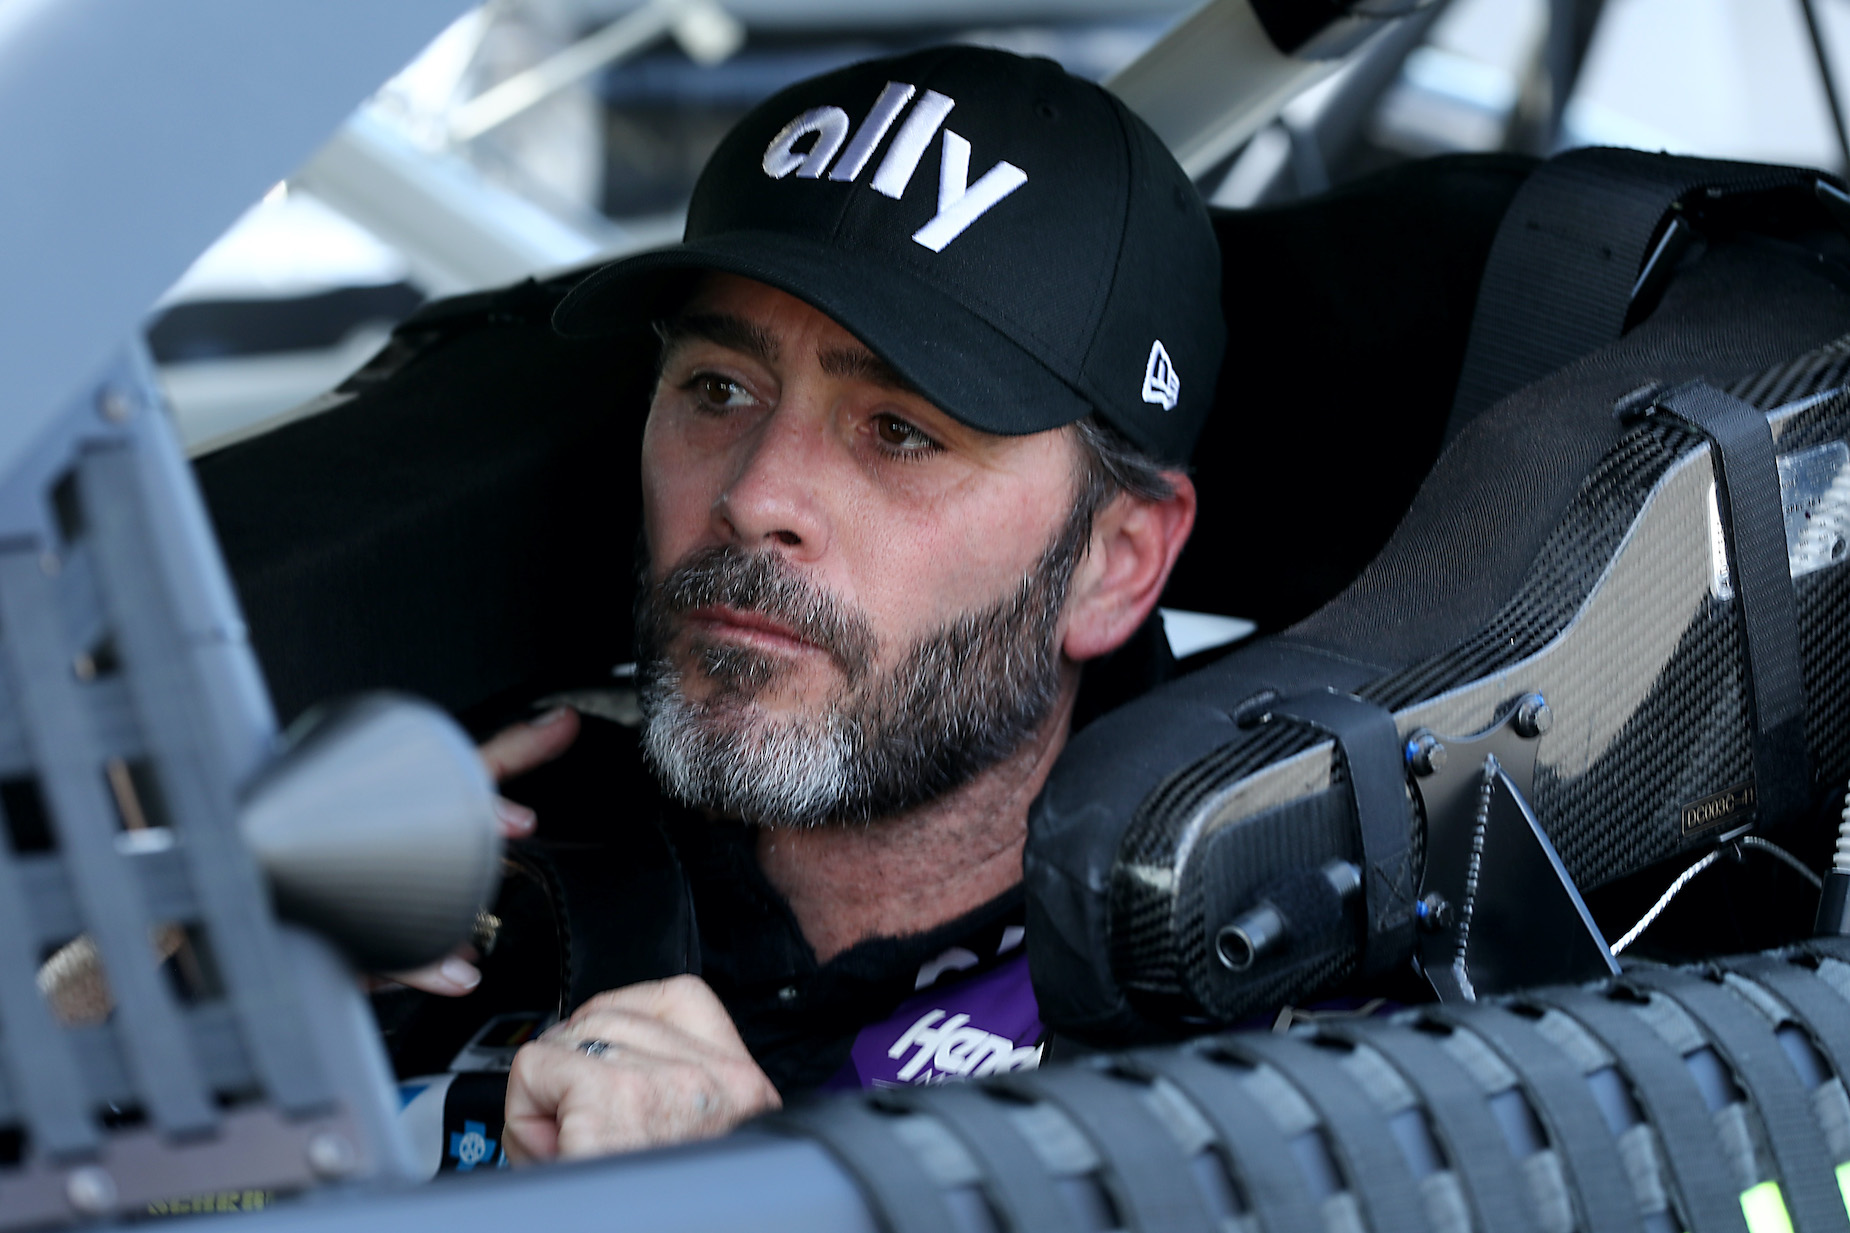 NASCAR driver Jimmie Johnson sits in the driver's seat